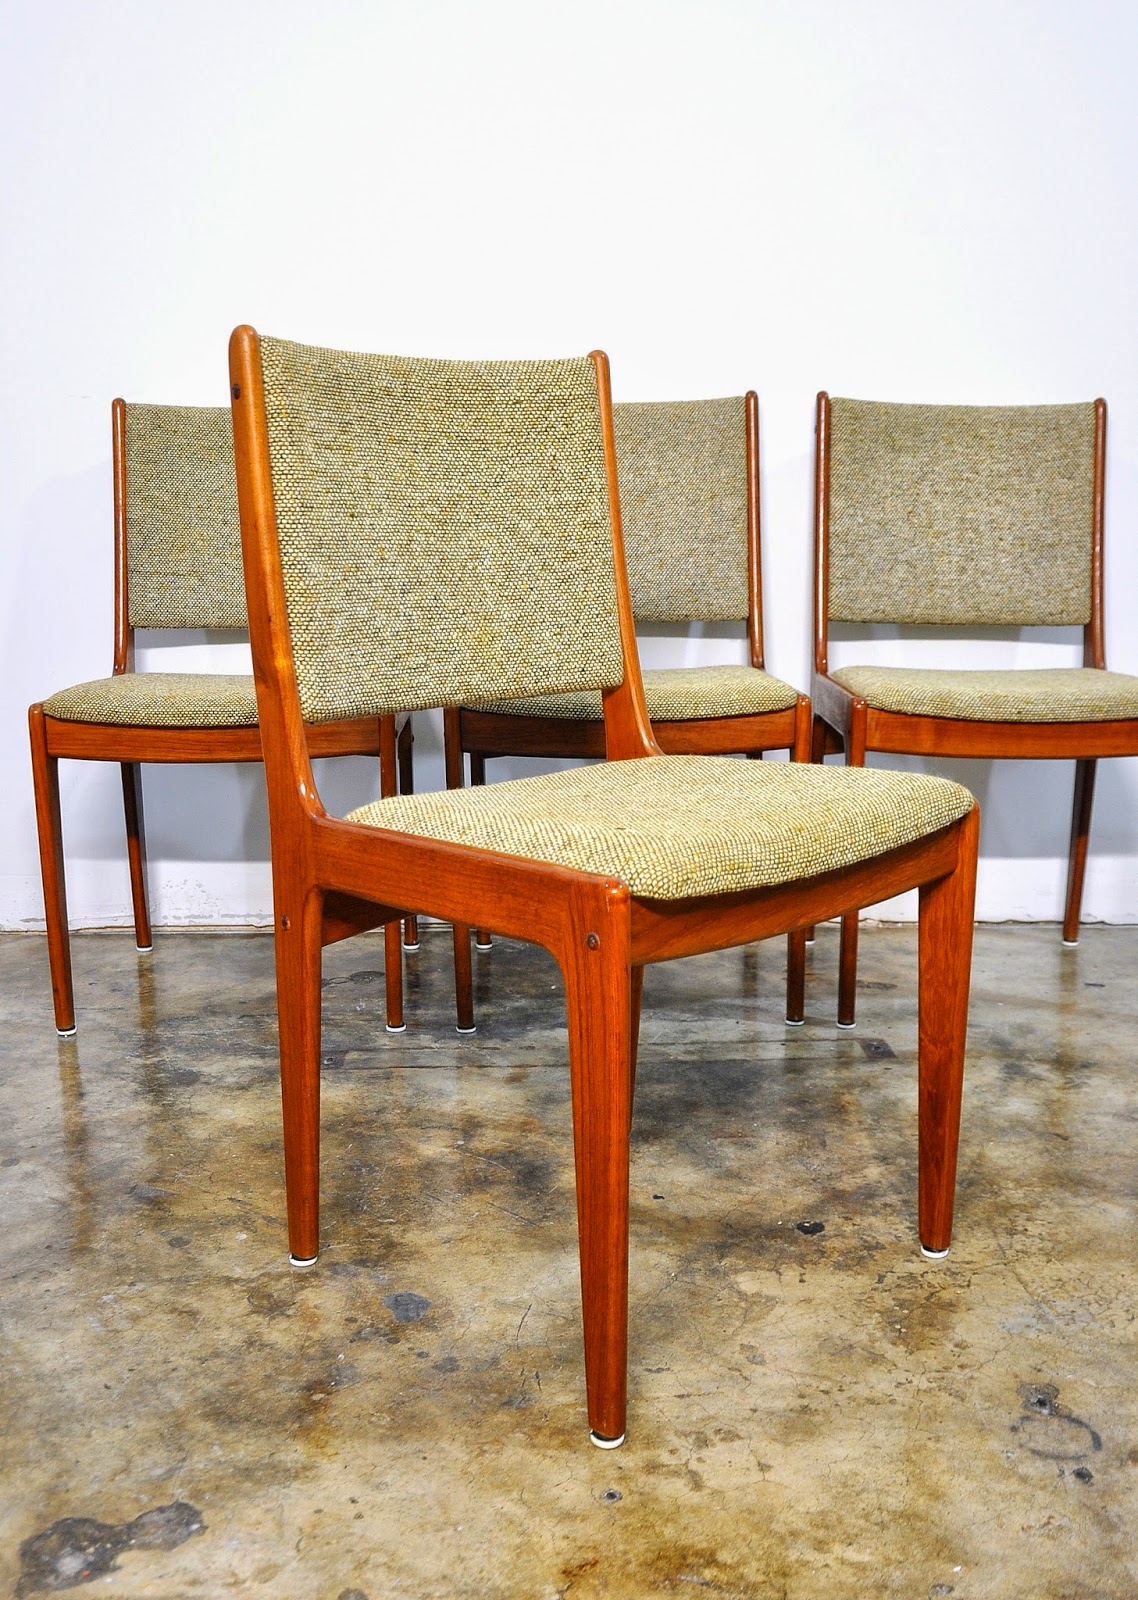 Dining Table Set 6 Chairs Oversized Chair With Ottoman Select Modern: Of 4 Danish Modern Teak